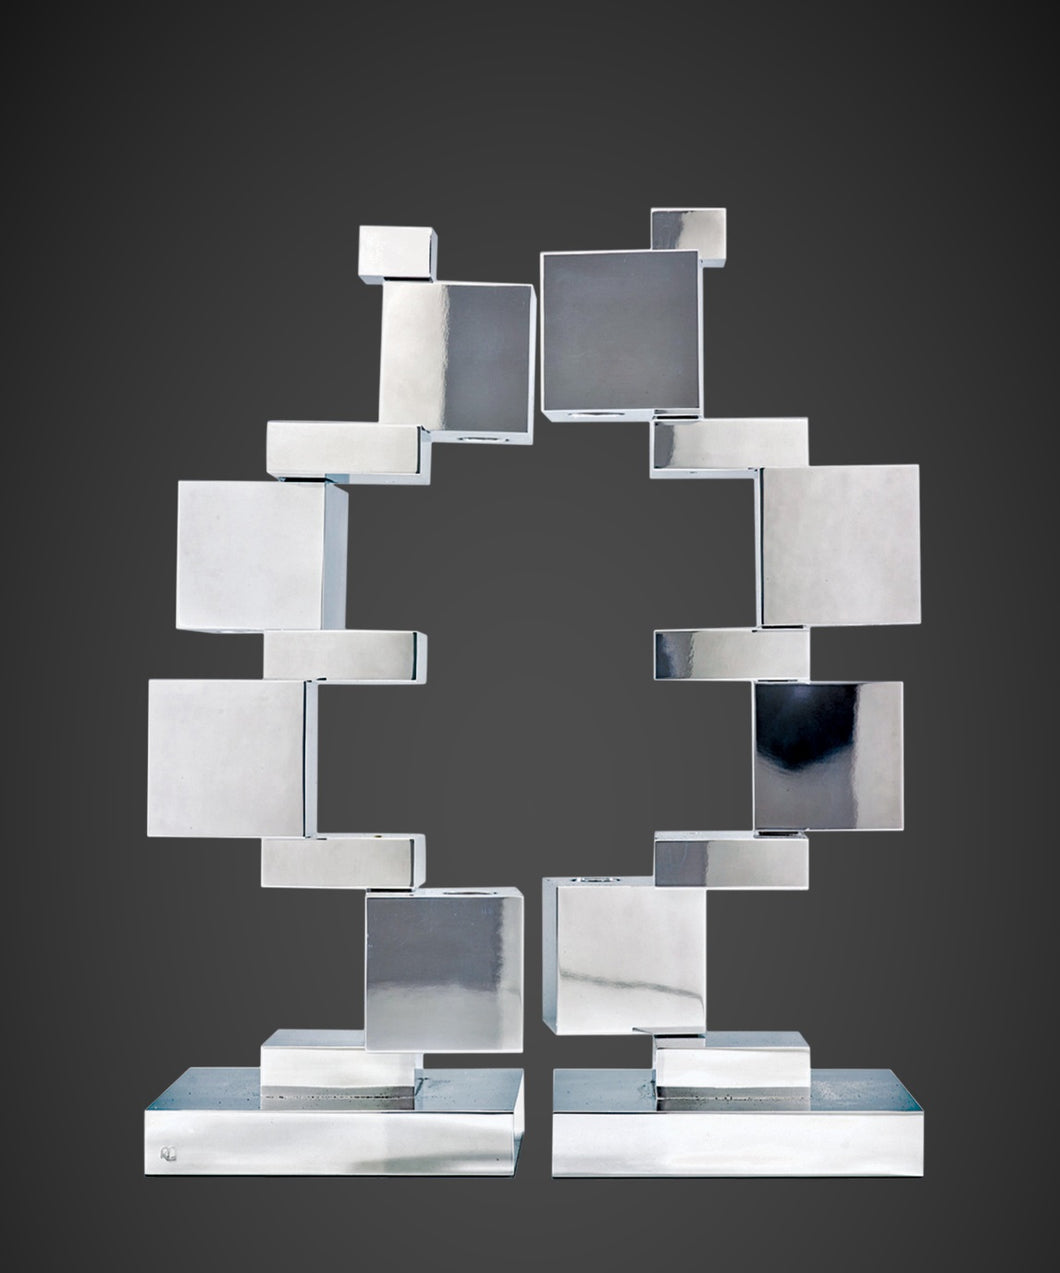 The Cube Candlesticks